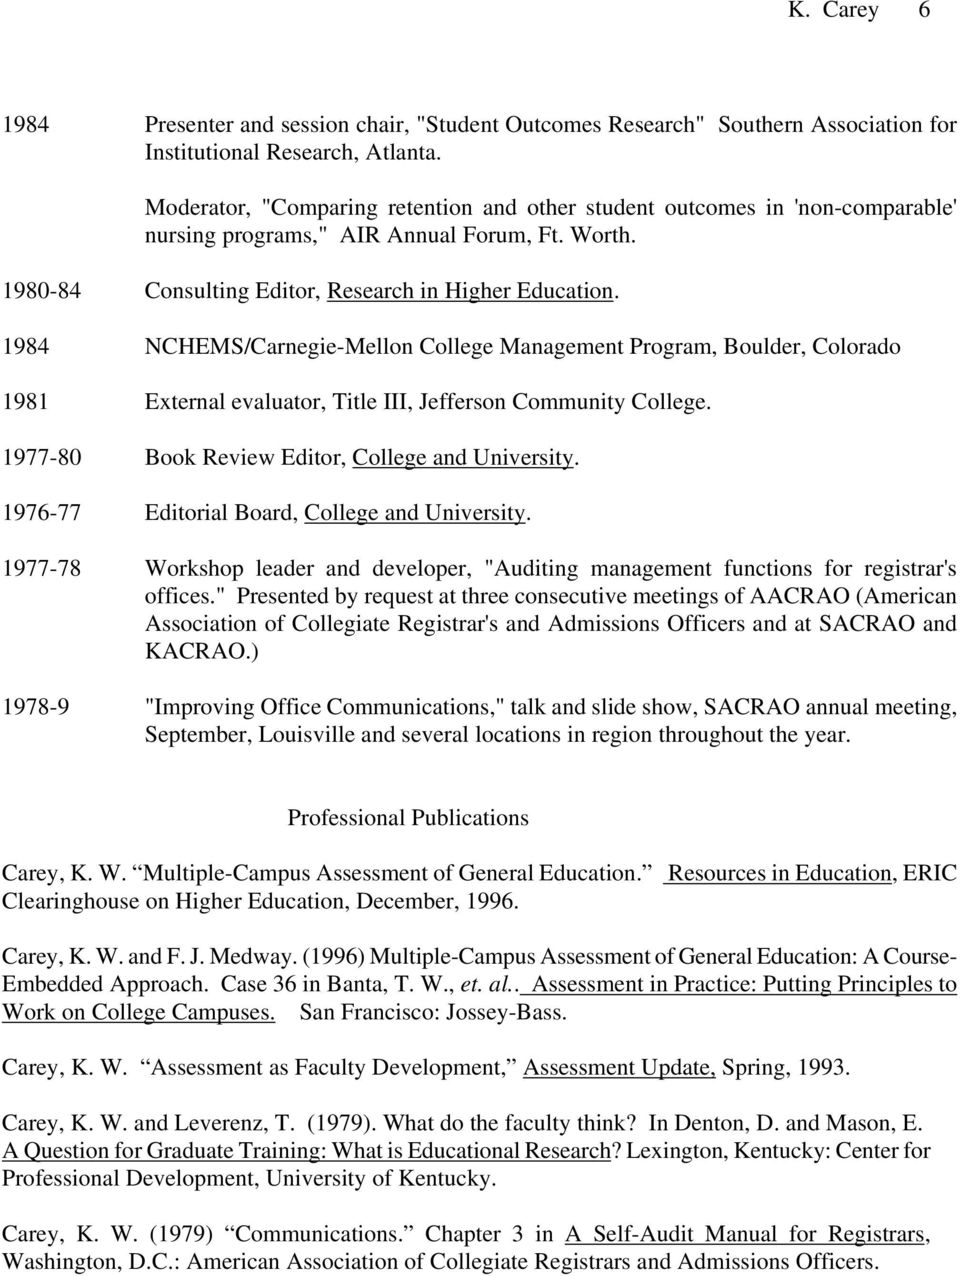 1984 NCHEMS/Carnegie-Mellon College Management Program, Boulder, Colorado 1981 External evaluator, Title III, Jefferson Community College. 1977-80 Book Review Editor, College and University.